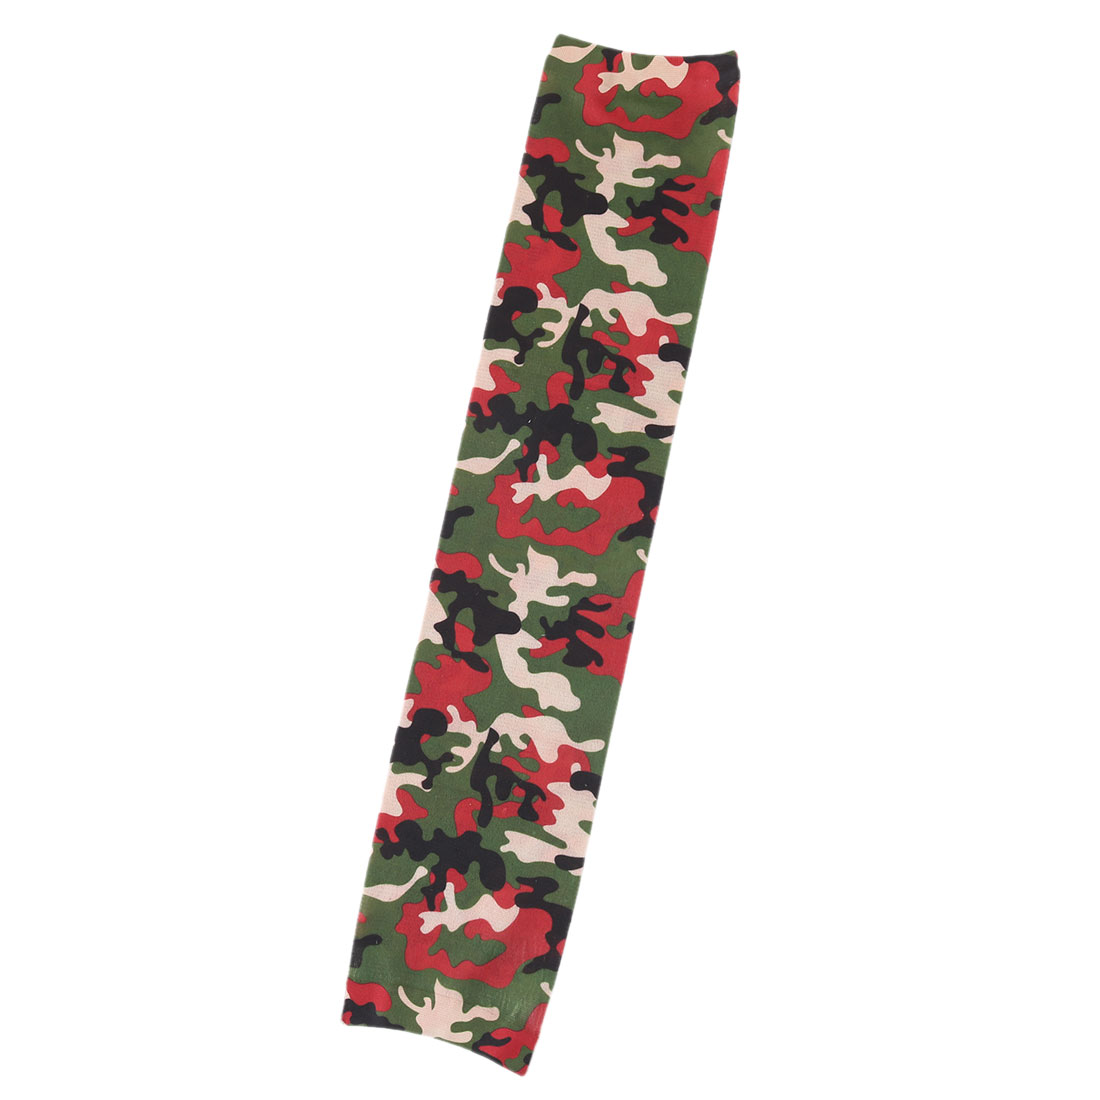 Home Garden Camouflage Print Cleaning Arm Protector Sun Protection Sleeve Cover Green